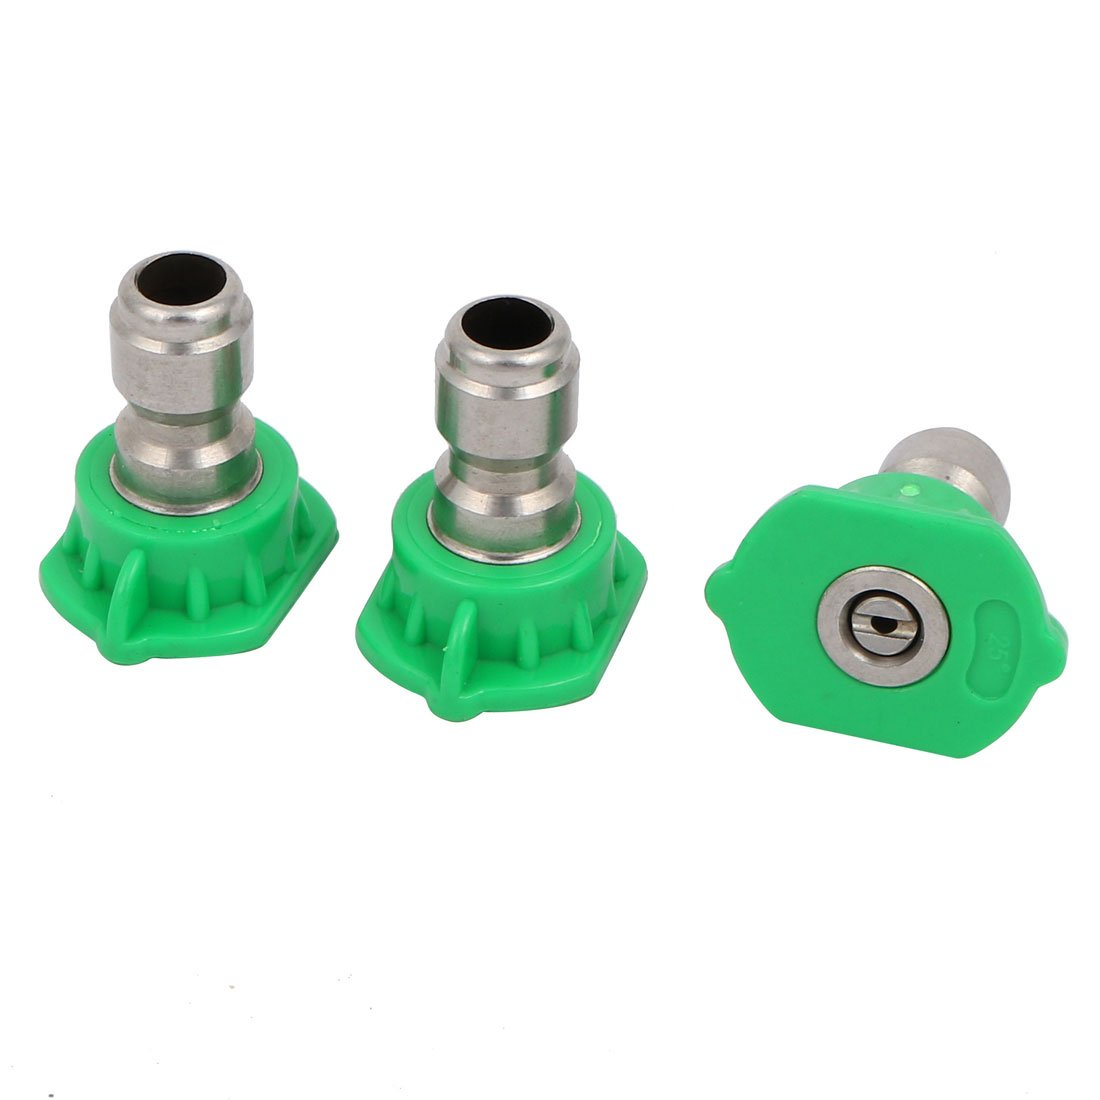 sourcingmap 1.6mm Dia 25 Degree Spray Nozzle Universal Pressure Washer Accessories Green 3pcs